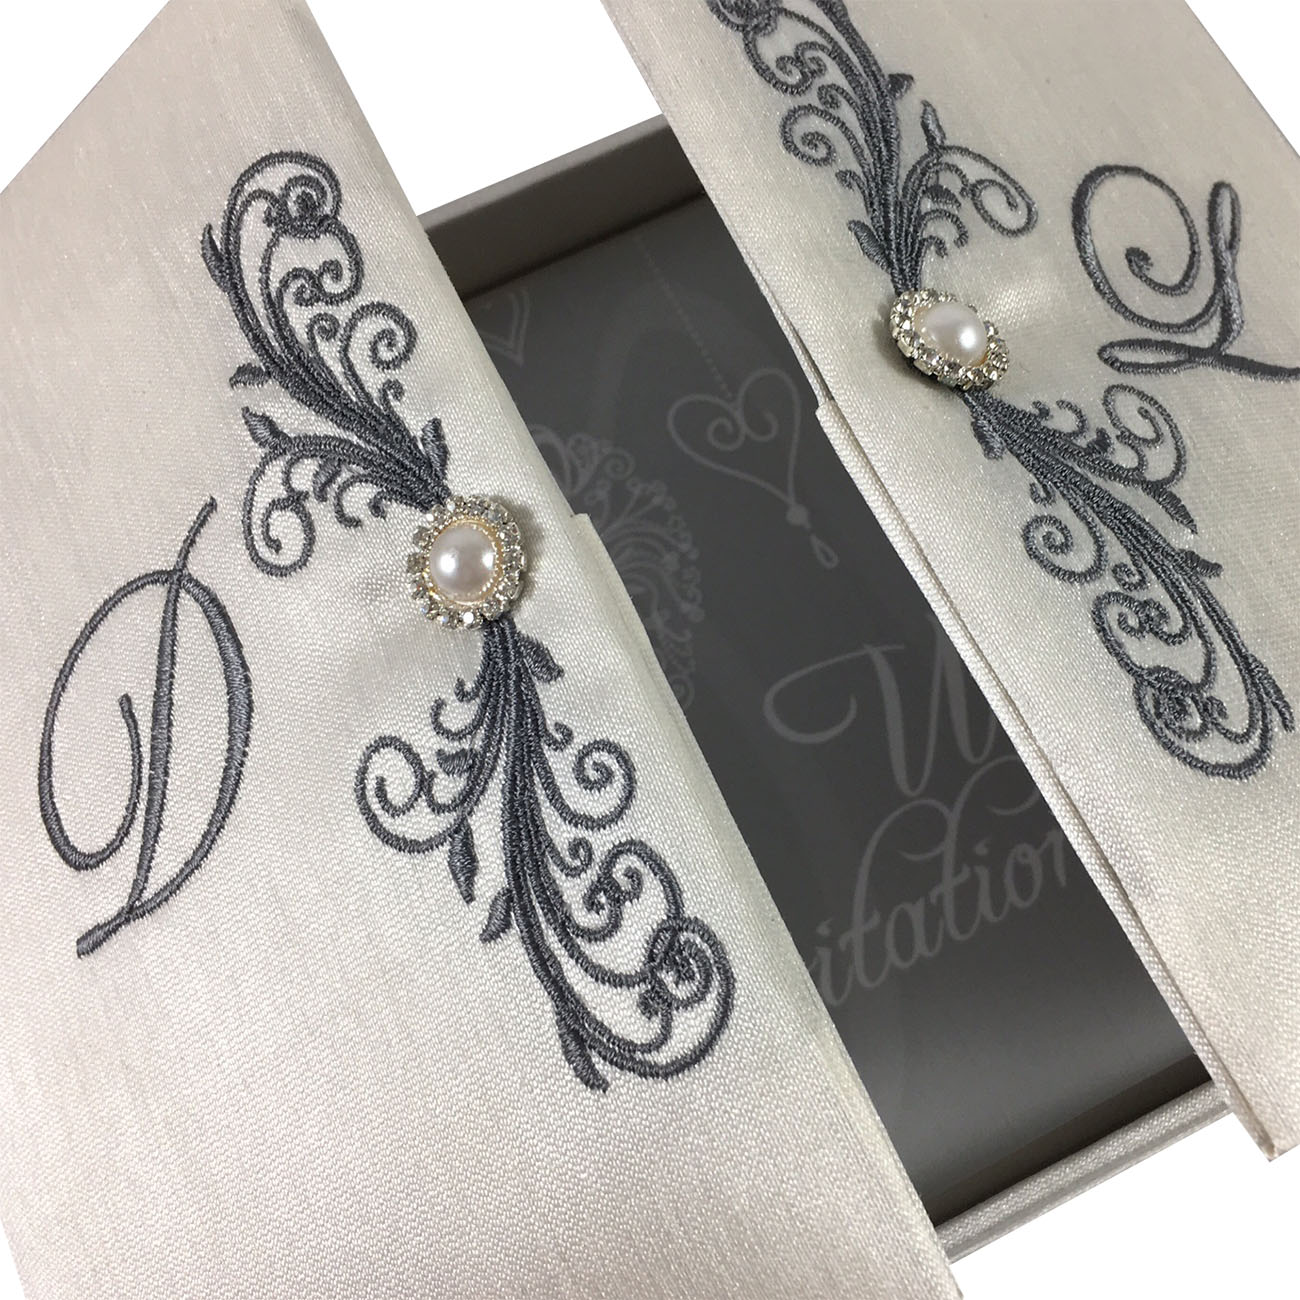 Ivory High End Couture Boxed Wedding Invitation That Stands Out